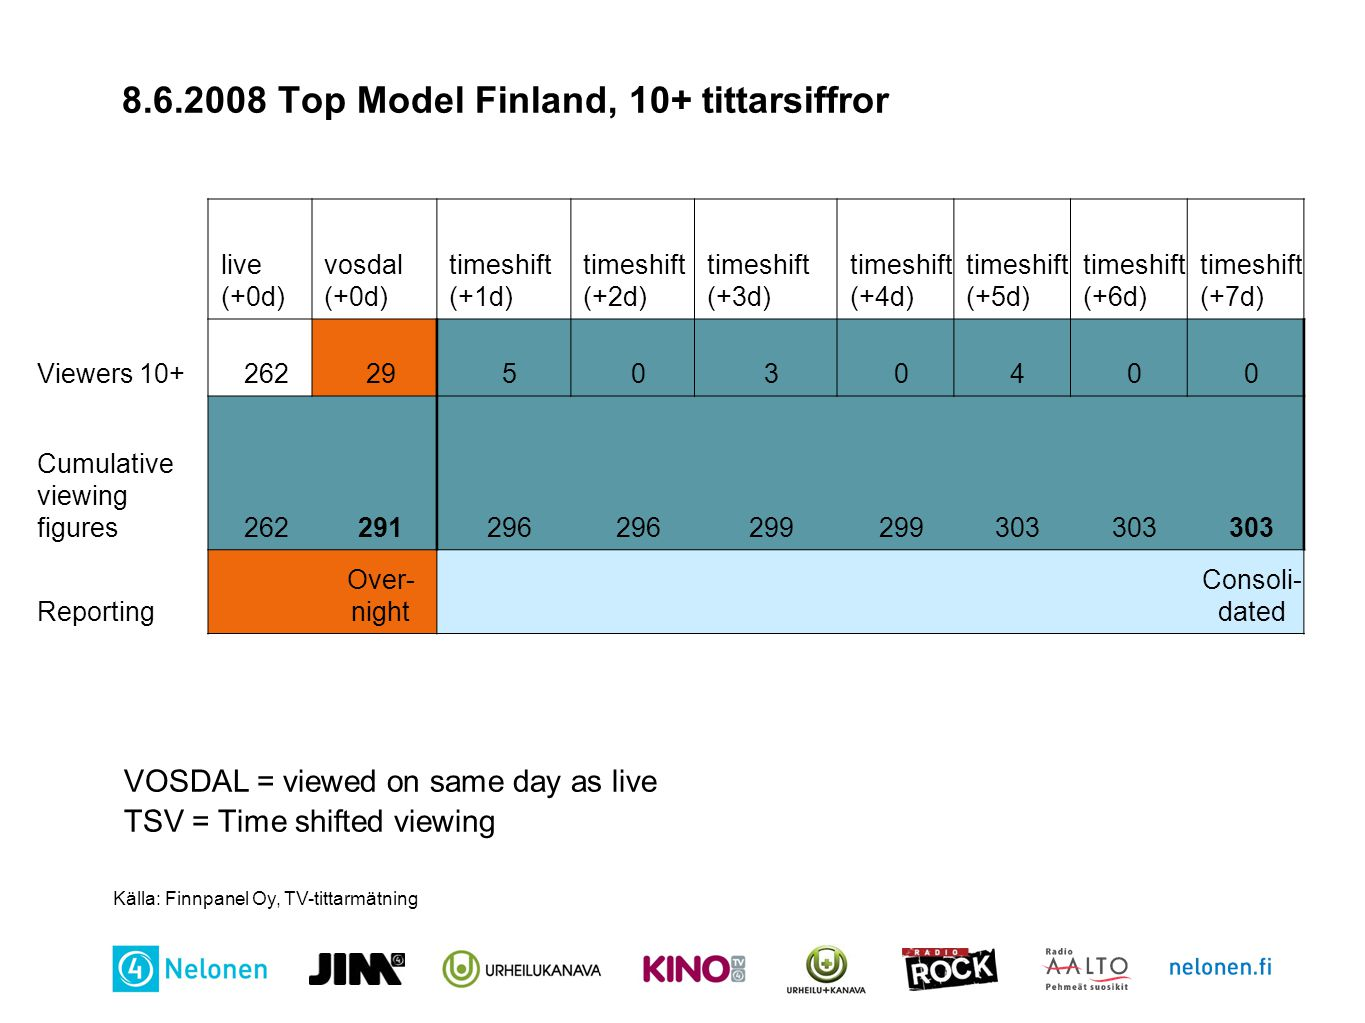 8.6.2008 Top Model Finland, 10+ tittarsiffror